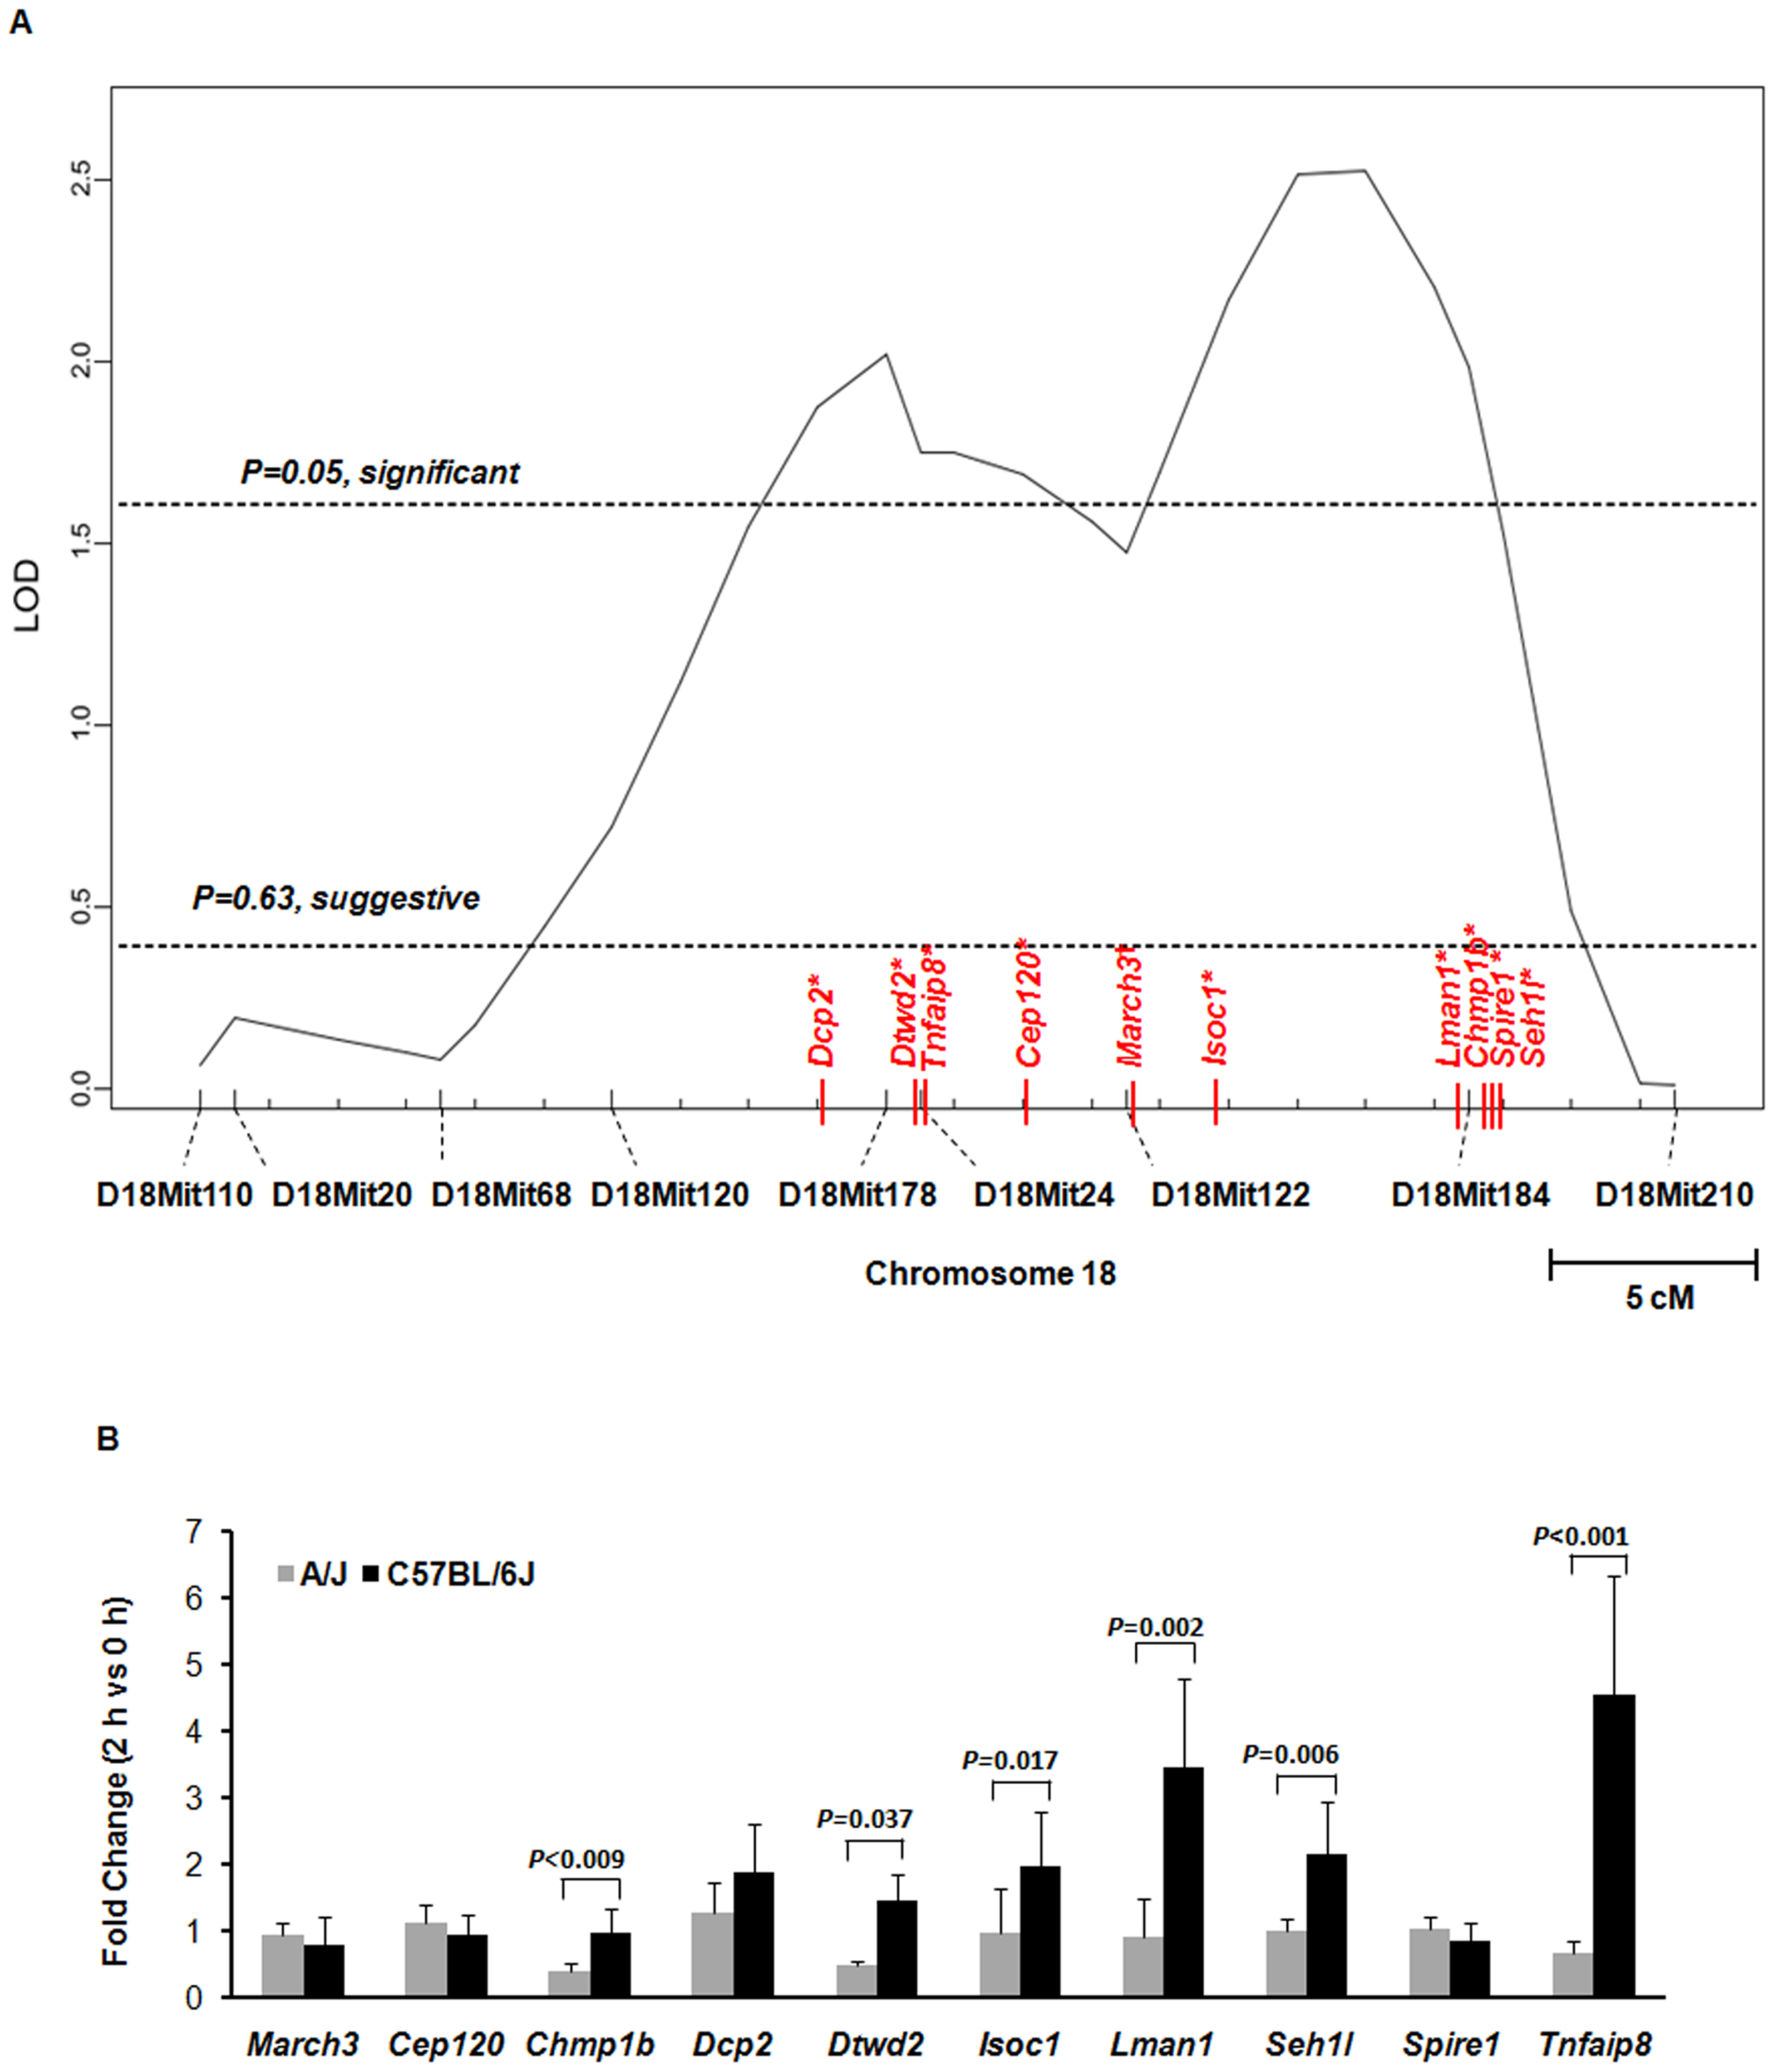 Ten genes on chromosome 18 were identified by both QTL mapping and expression array for susceptibility to <i>S. aureus</i>.